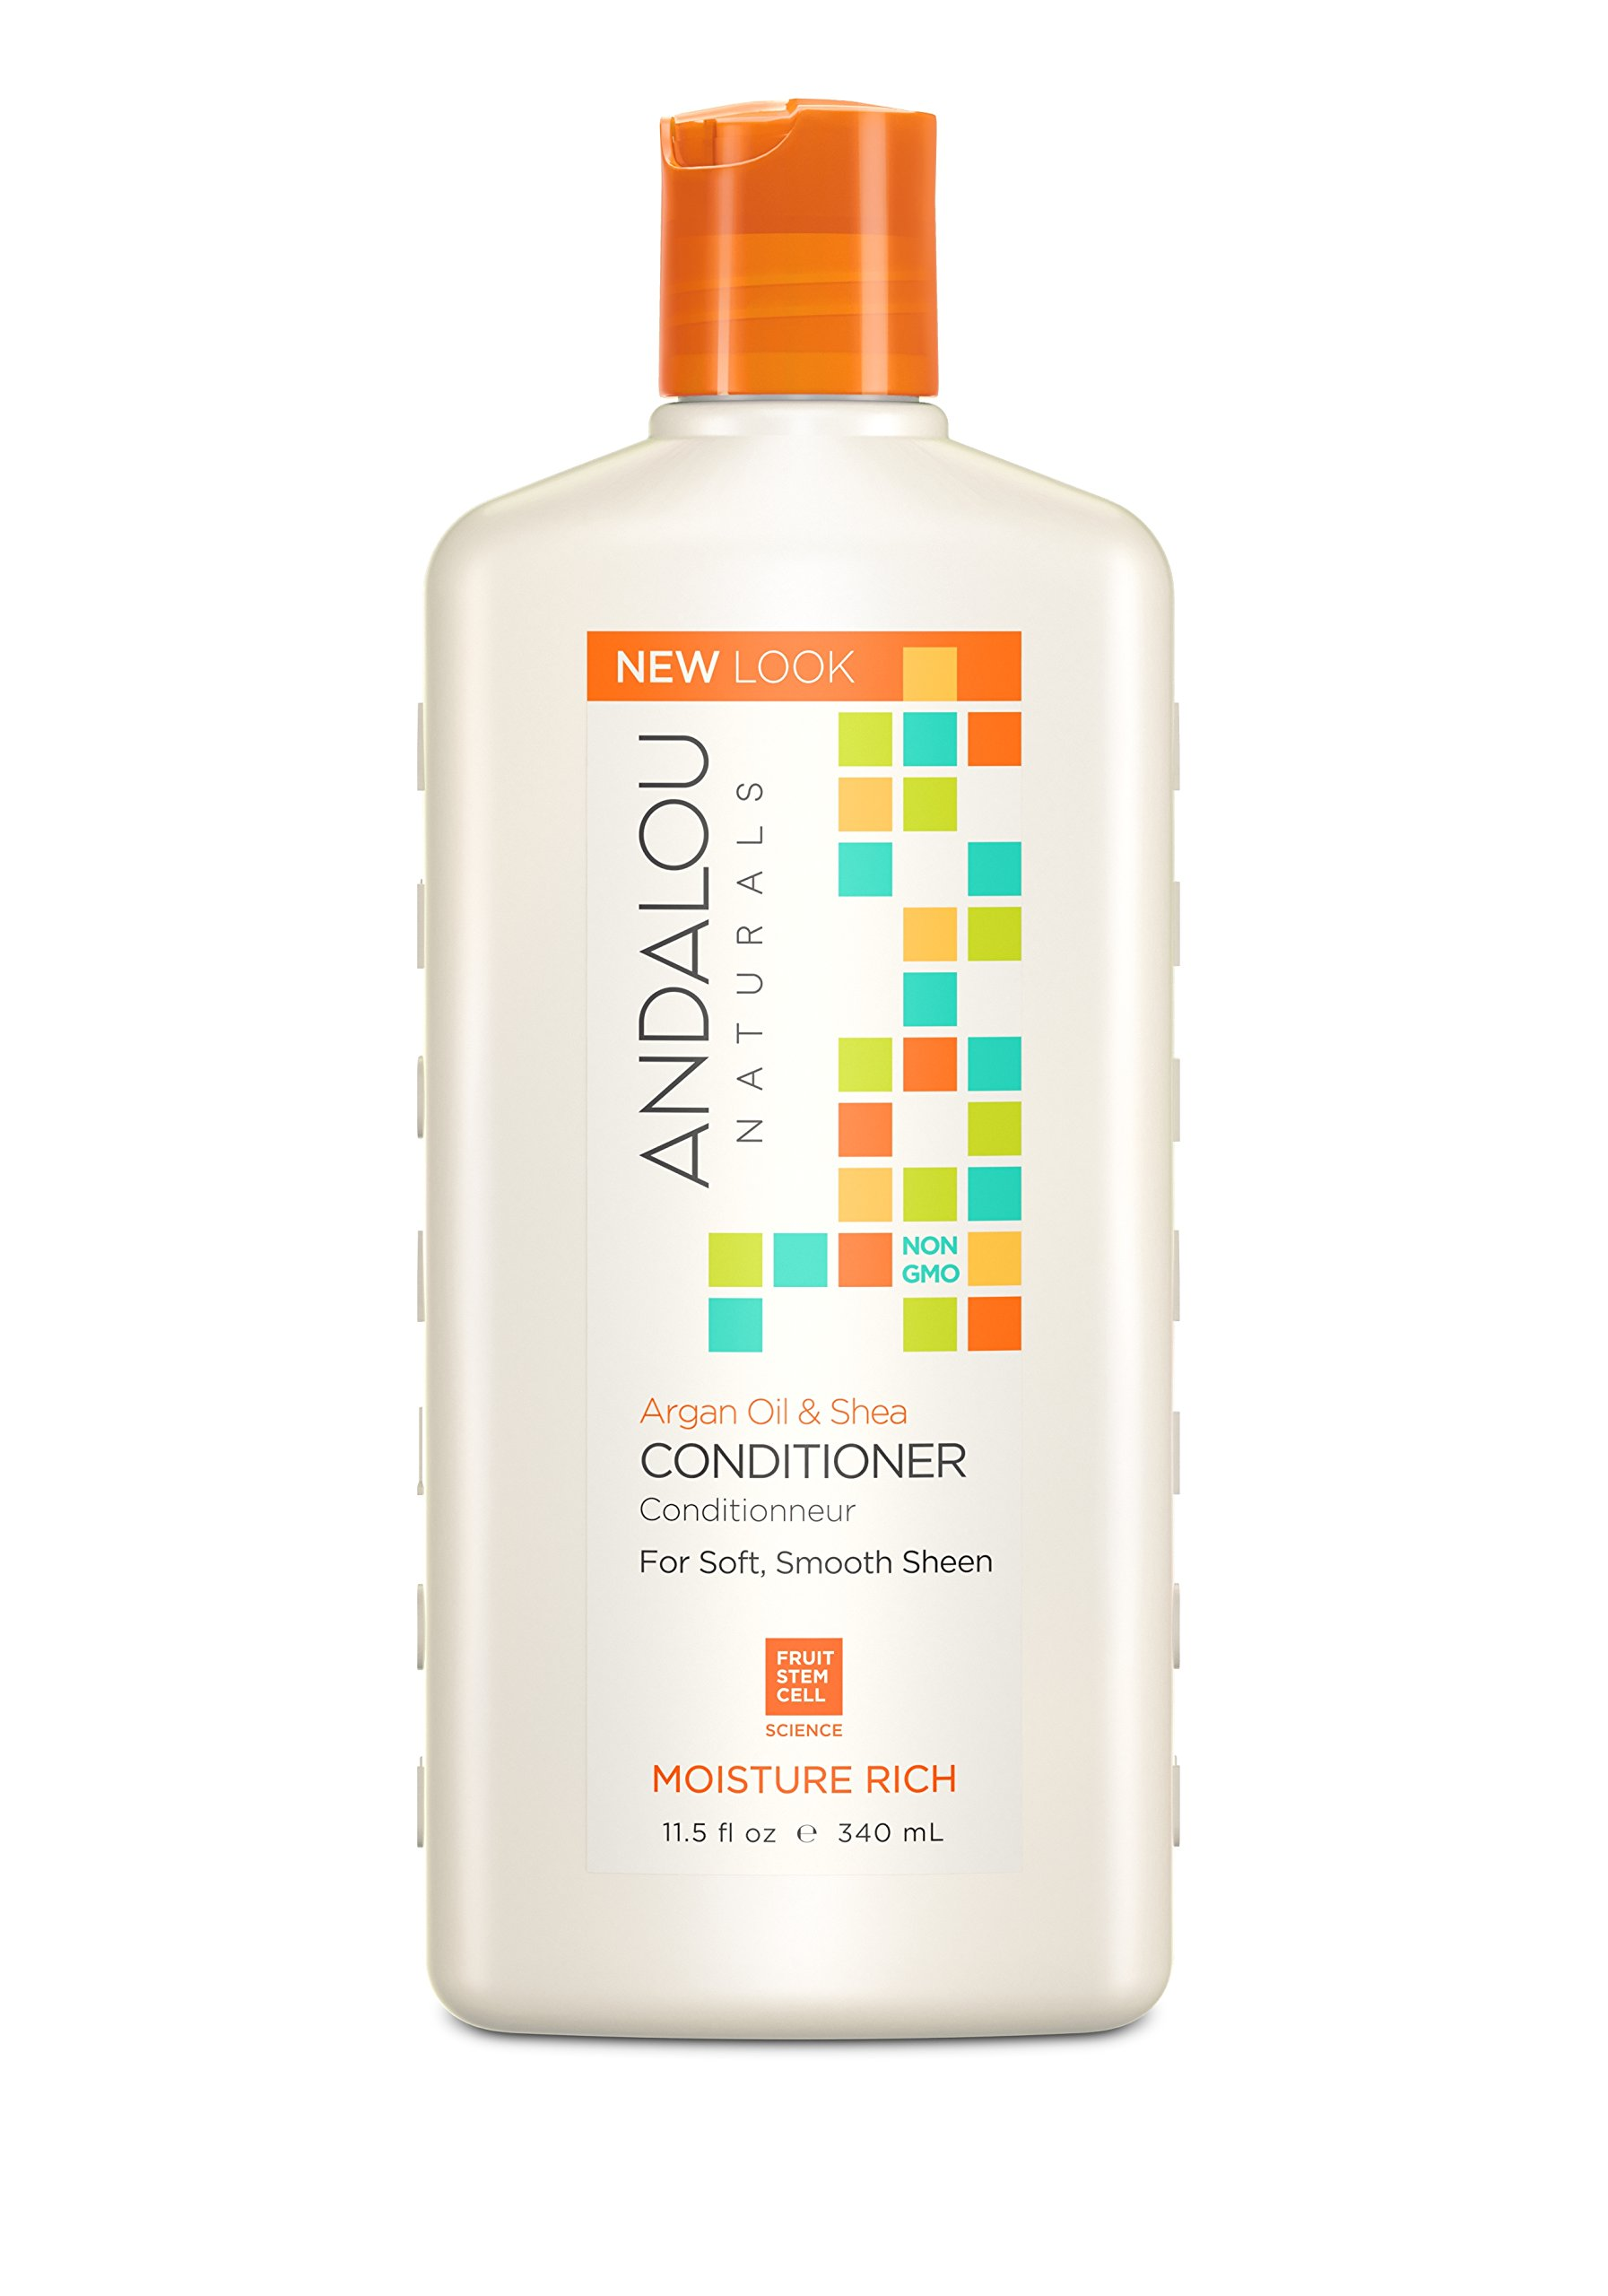 Andalou Naturals Argan Oil & Shea Moisture-Rich Conditioner, 11.5 oz, For Dry, Frizzy, Curly, Wavy Hair, Helps Smooth & De-Frizz Split Ends